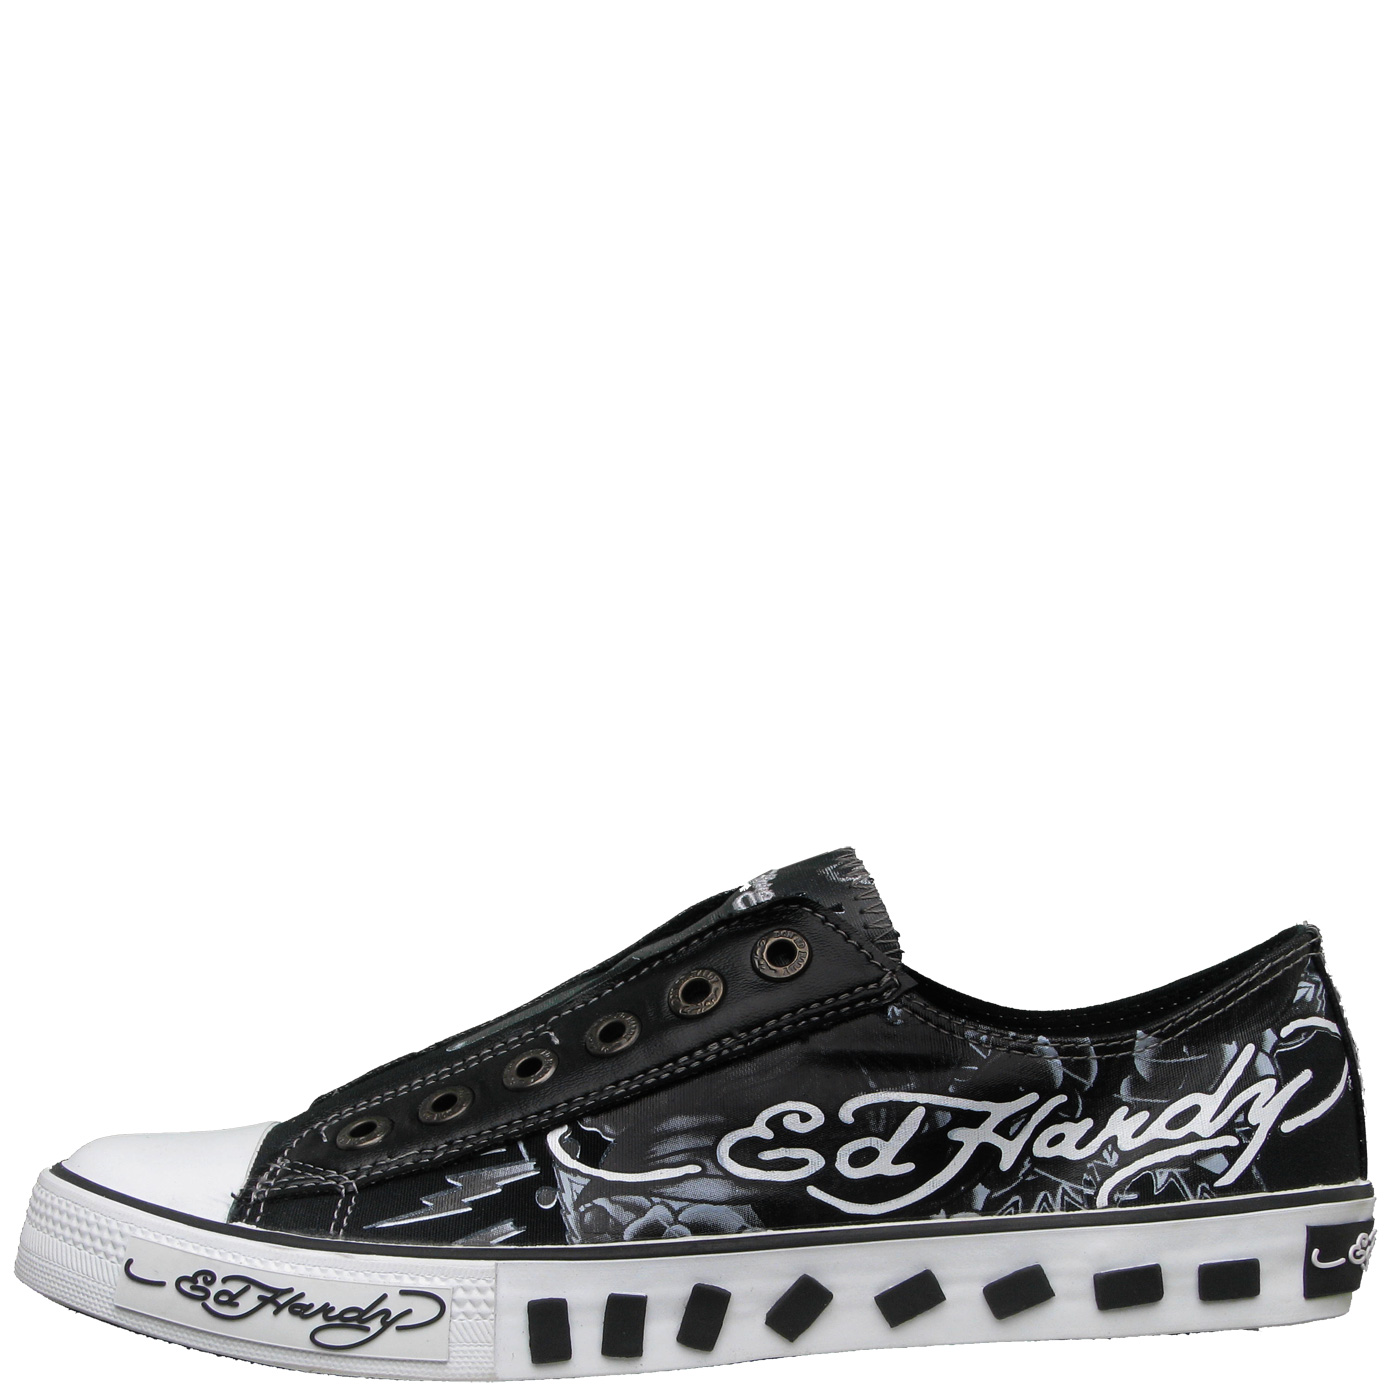 Ed Hardy Lowrise Van Nuys Shoe for Women - Black